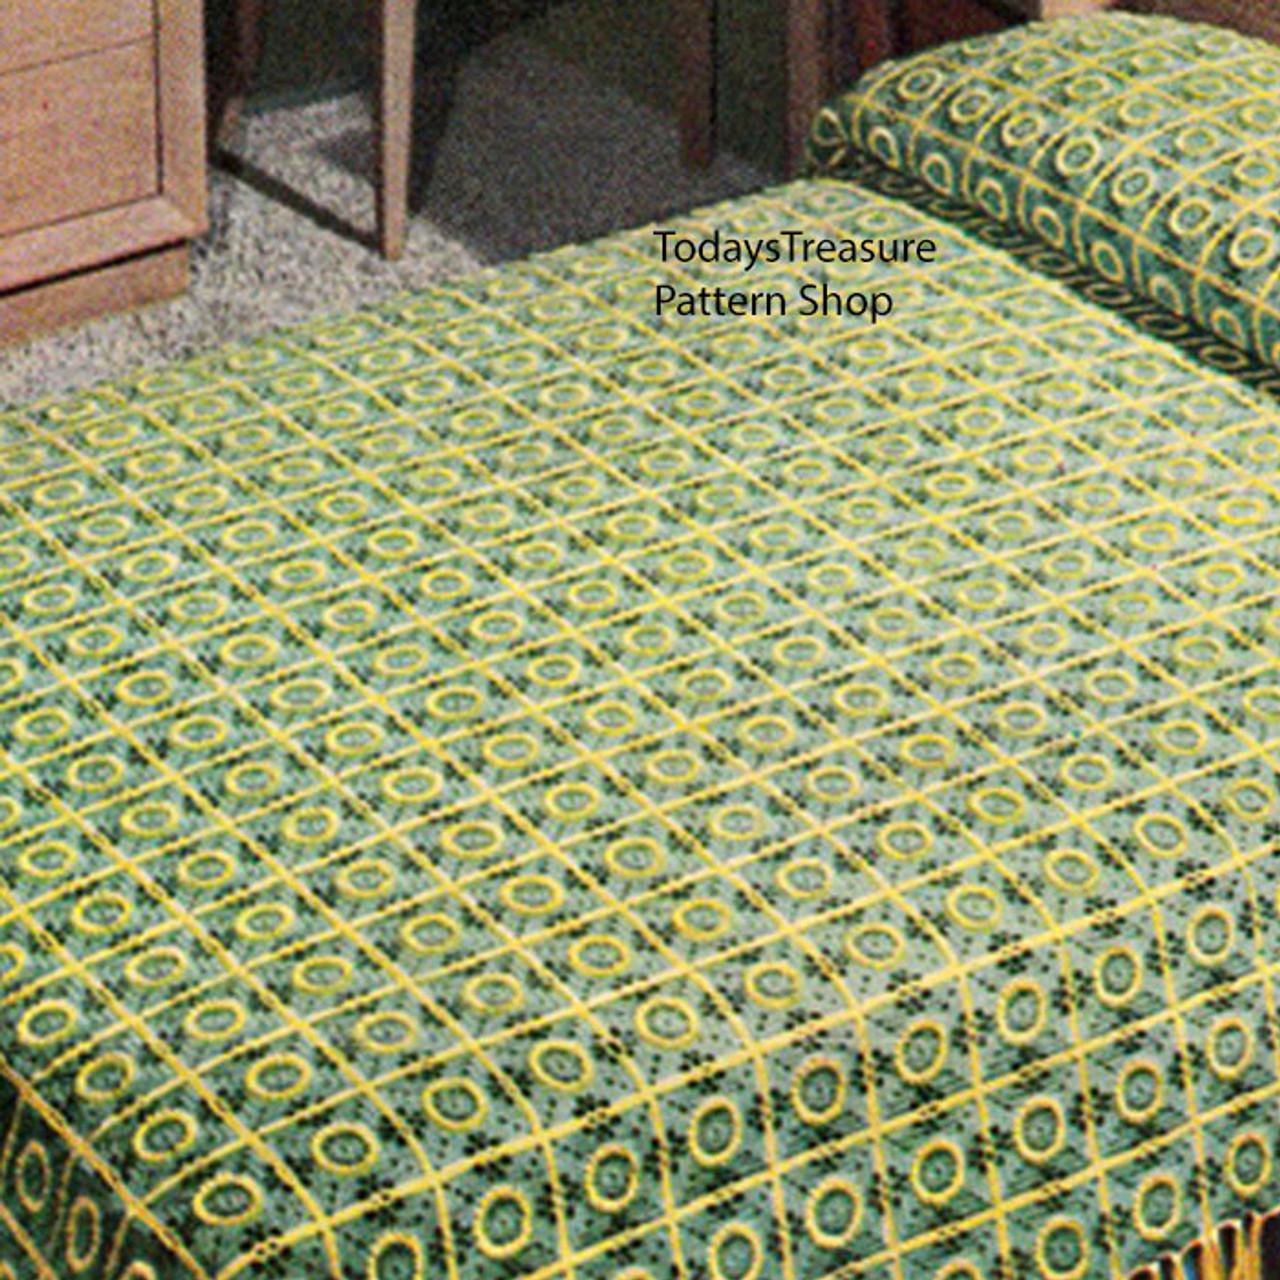 Crocheted Pennsylvania Modern Bedspread Pattern